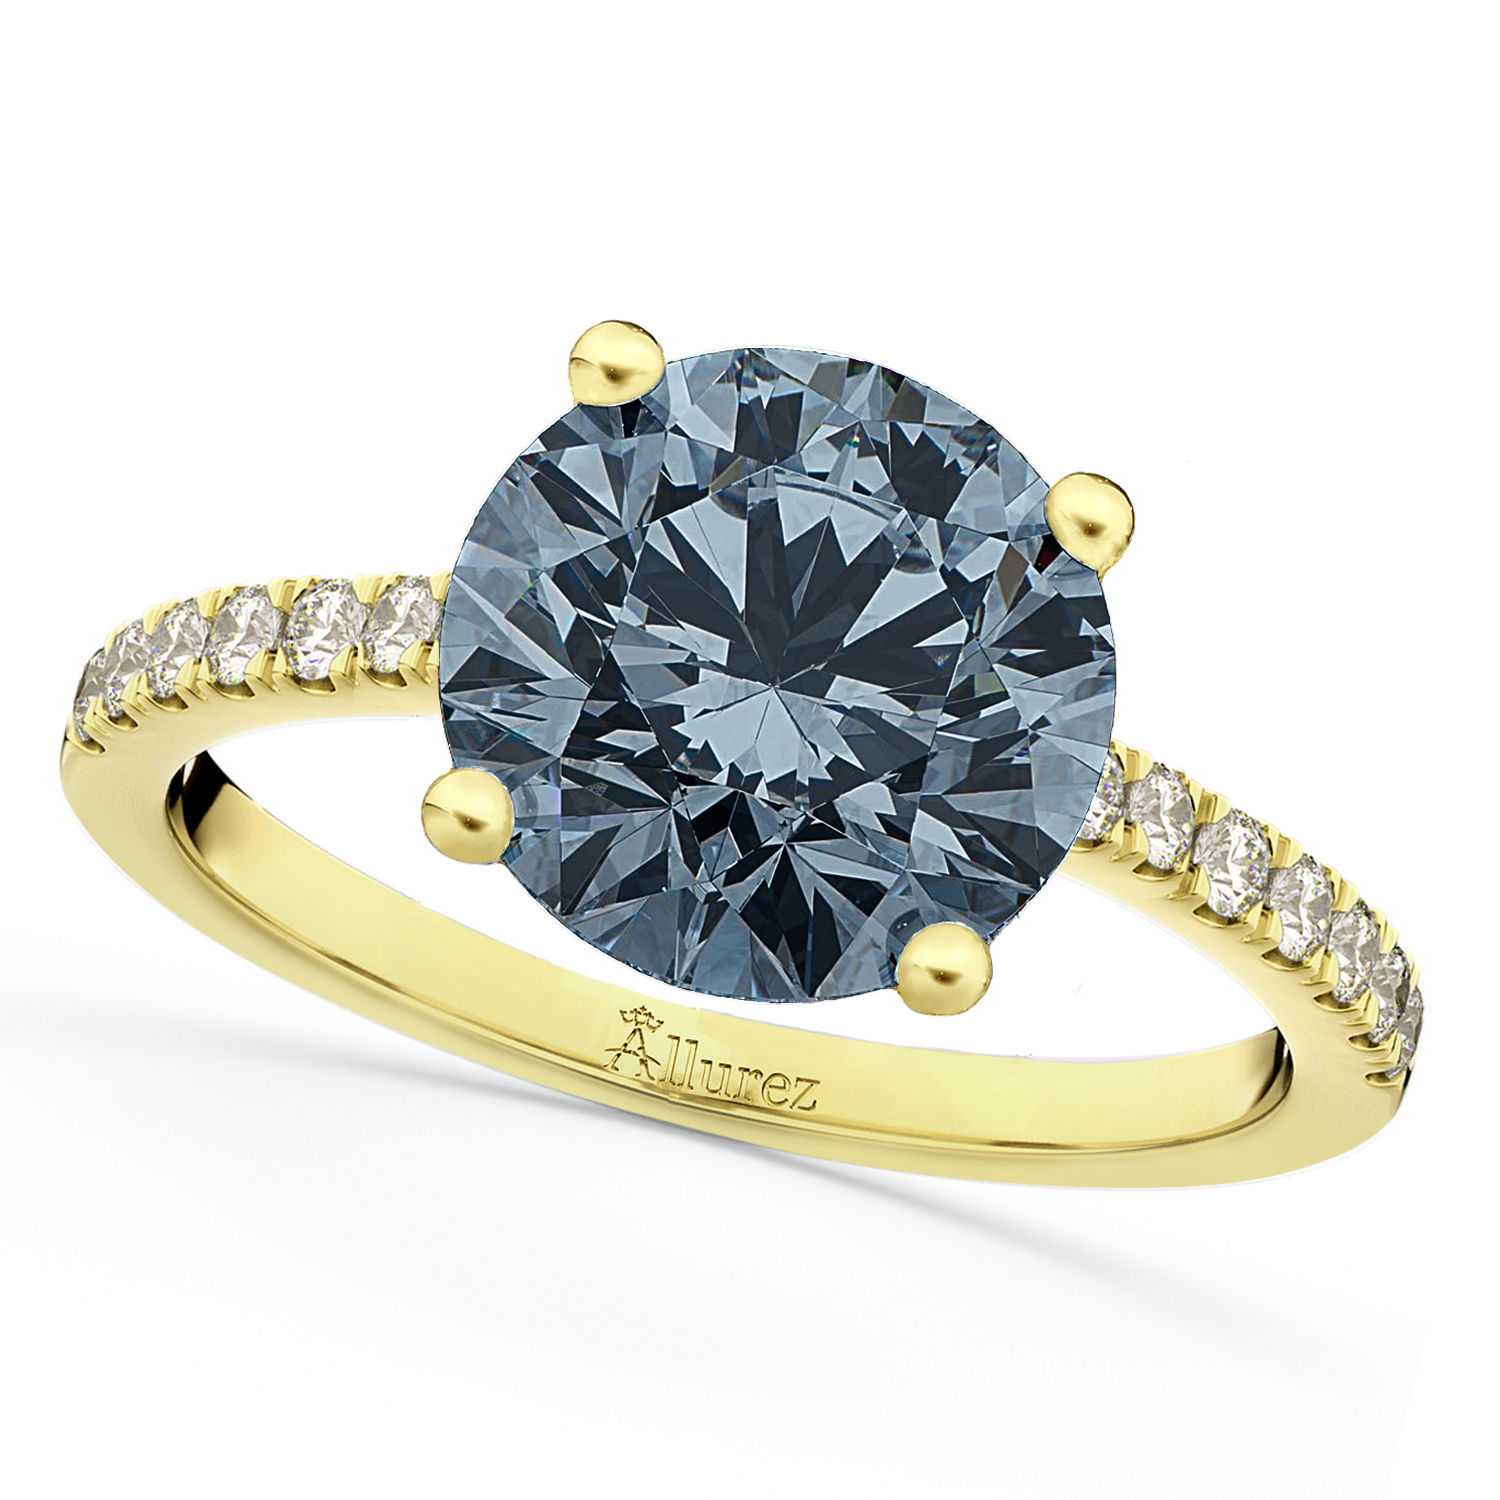 Gray Spinel & Diamond Engagement Ring 14K Yellow Gold 2.01ct